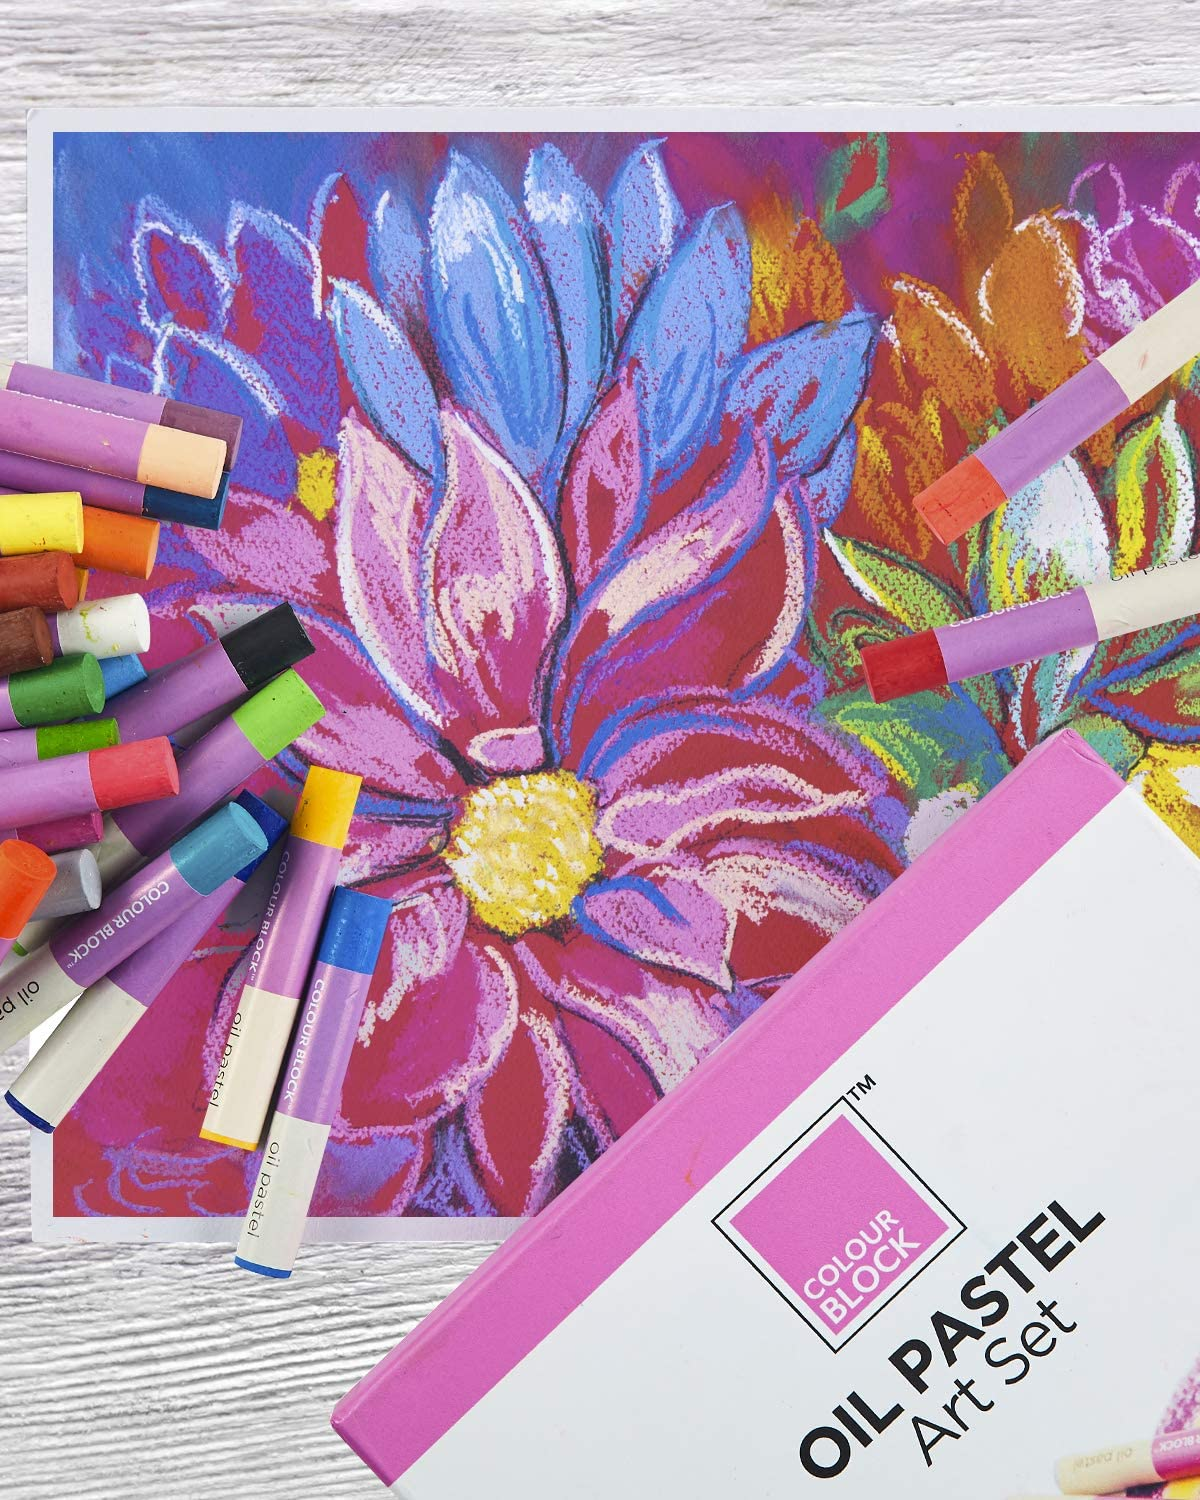 """Assorted oil pastels for kids and professionals great for watercolor effect COLOUR BLOCK 24pc Oil Pastel Art Set Each stick 2-/¾/""""x⅖/"""" and well organized in colored storage box Water-soluble"""